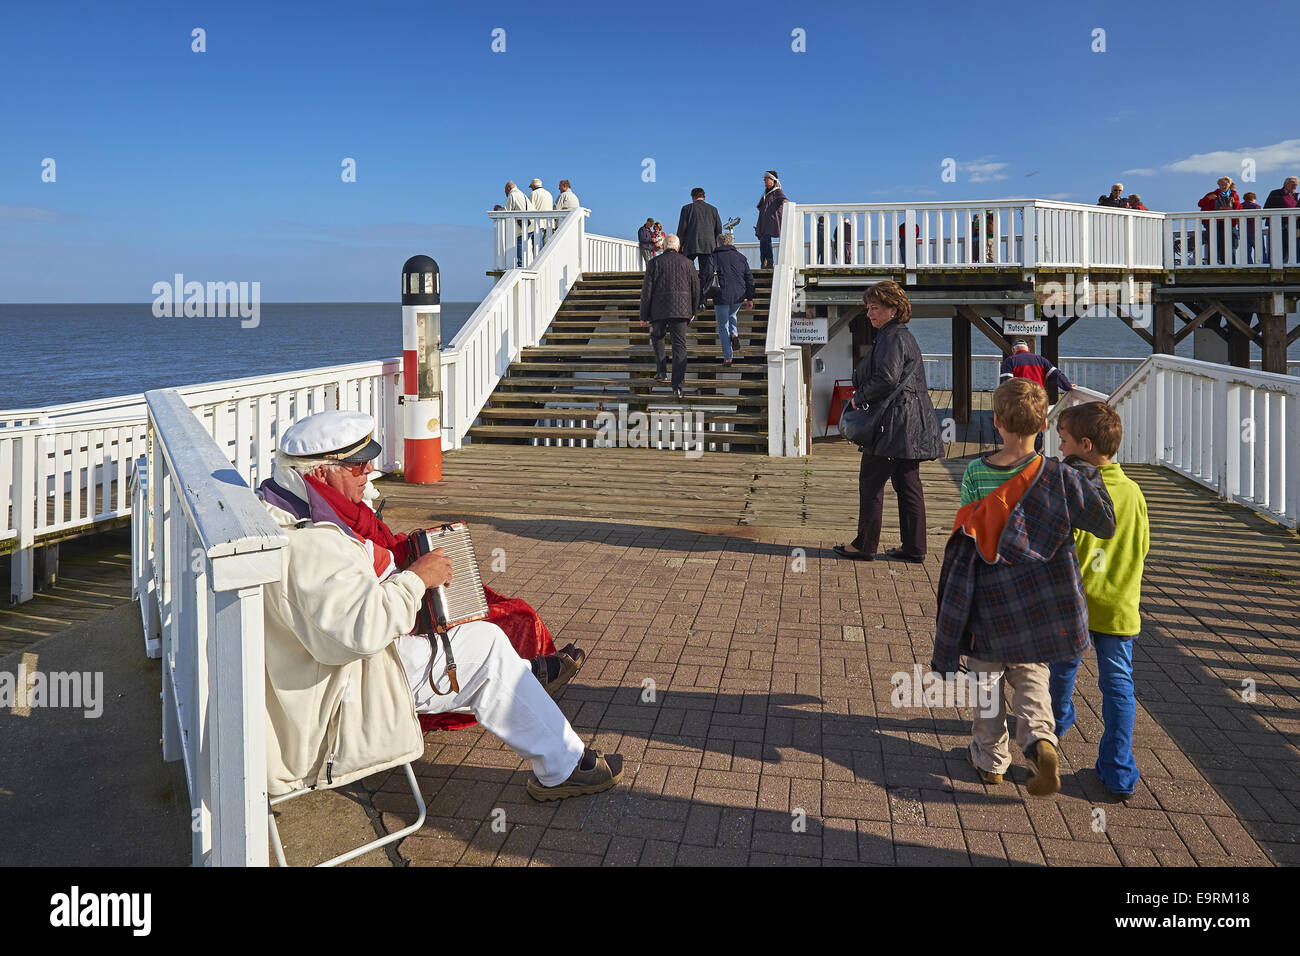 Pier Alte Liebe, Cuxhaven, Germany - Stock Image